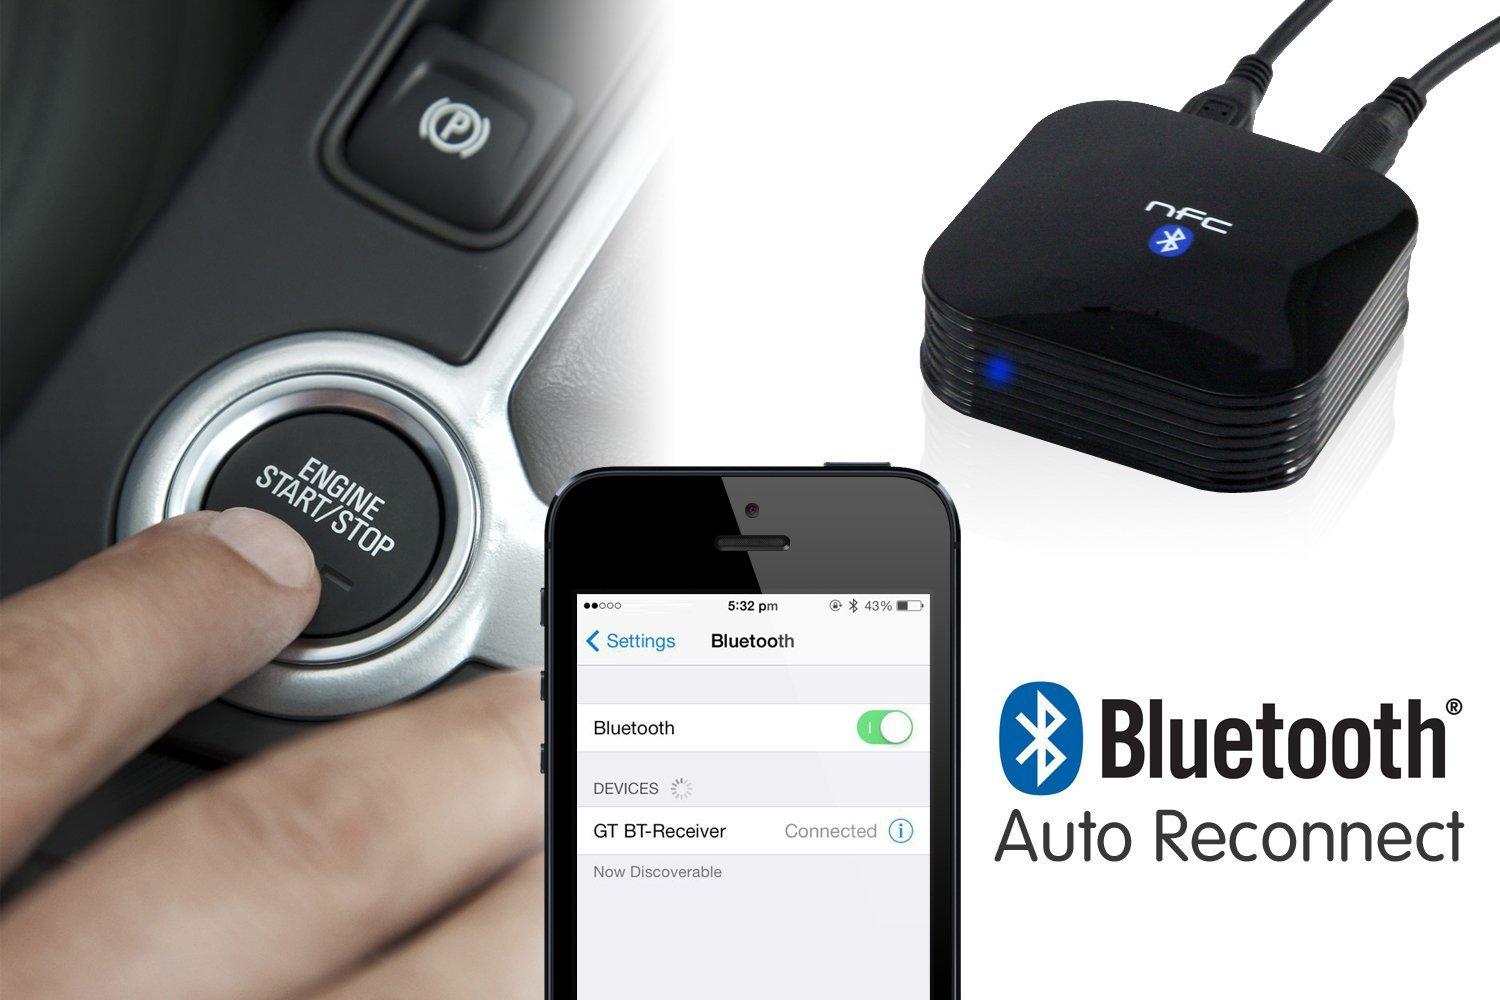 HomeSpot NFC-Enabled Wireless Bluetooth Audio Receiver for Car Audio Bluetooth Auto-Reconnect with White 3-Port Car Charger